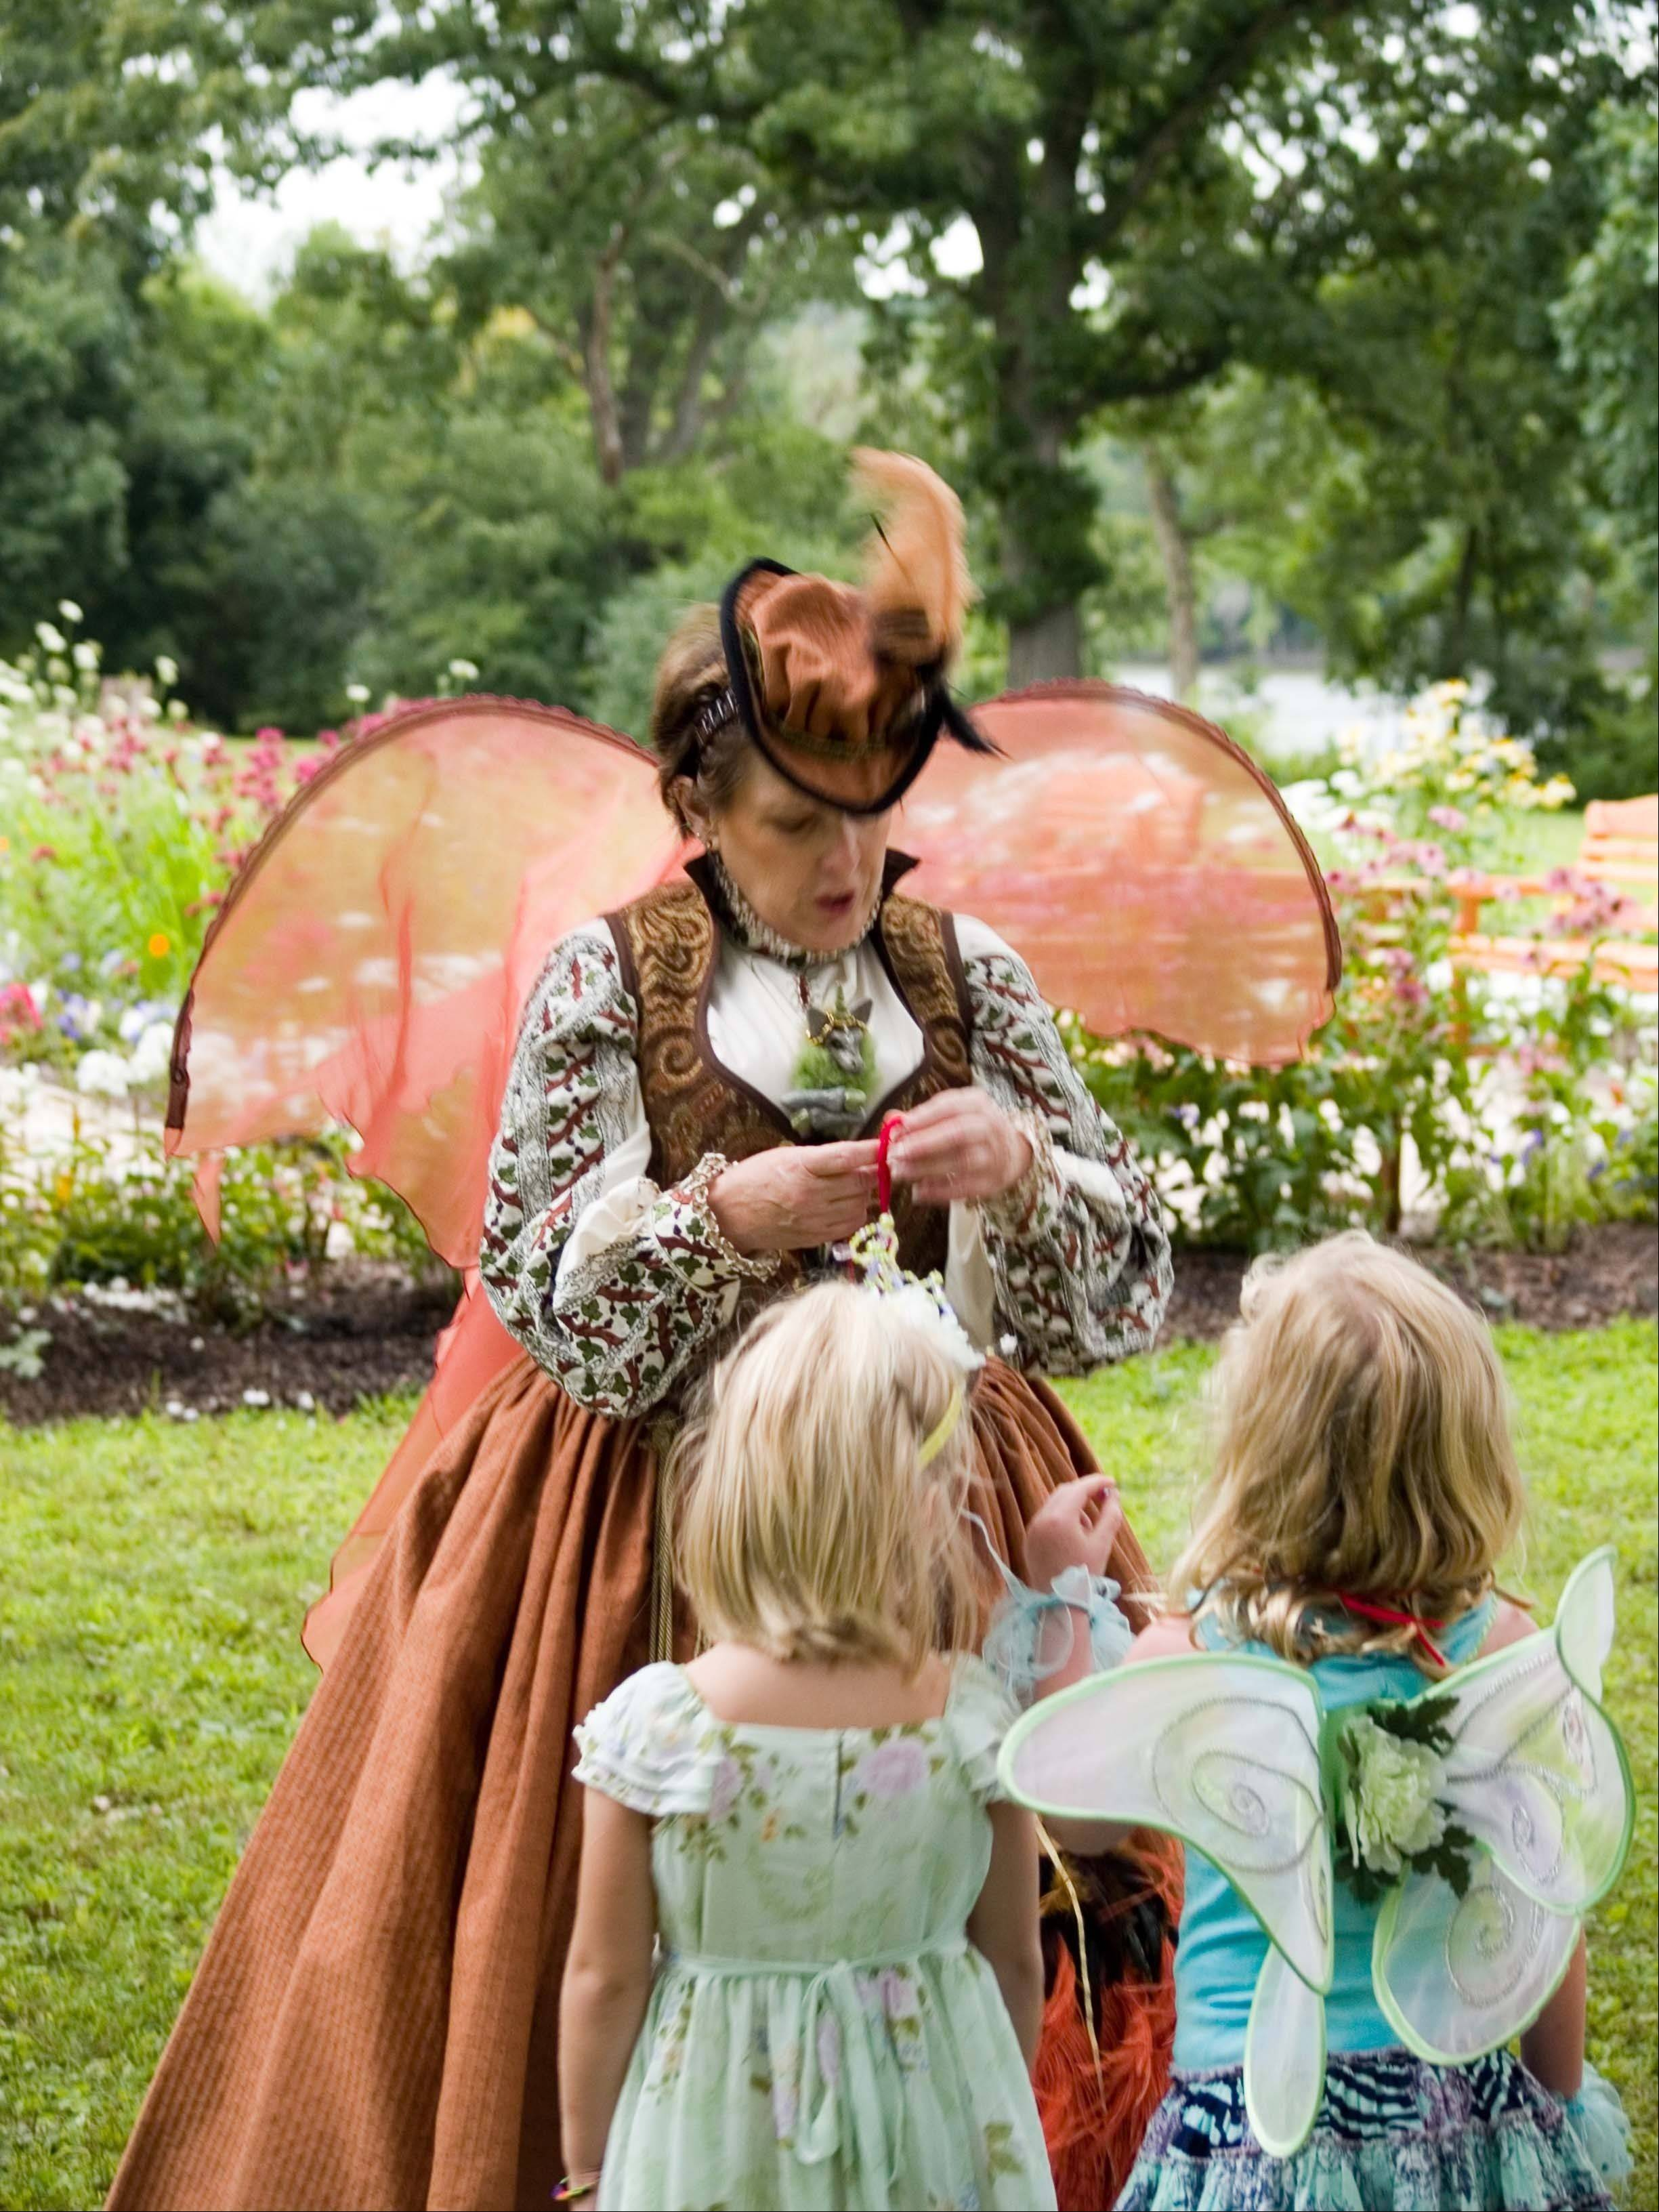 Carol Posa dresses as the festival's Fairy Godmother at last year's festival.